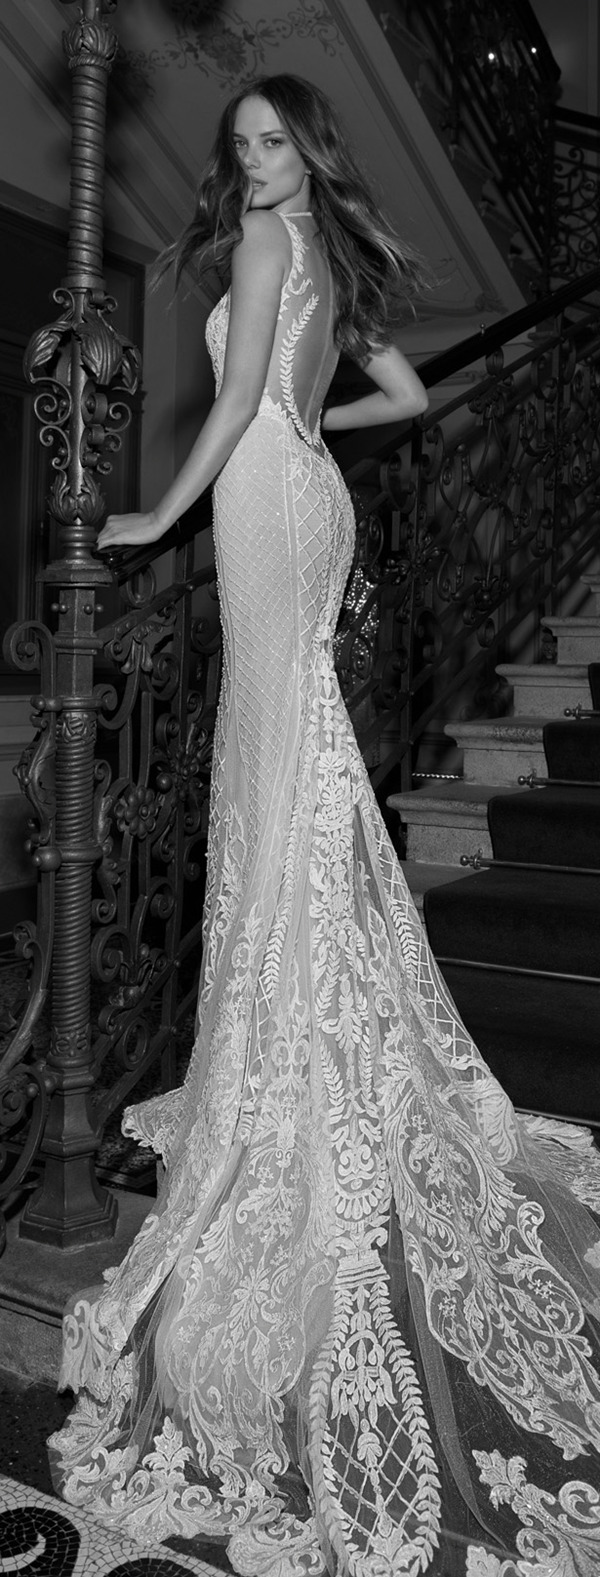 Berta bridal wedding dresses for fall 2015 elegantweddinginvites sexy chic mermaid vintage wedding dresses by berta bridal junglespirit Choice Image